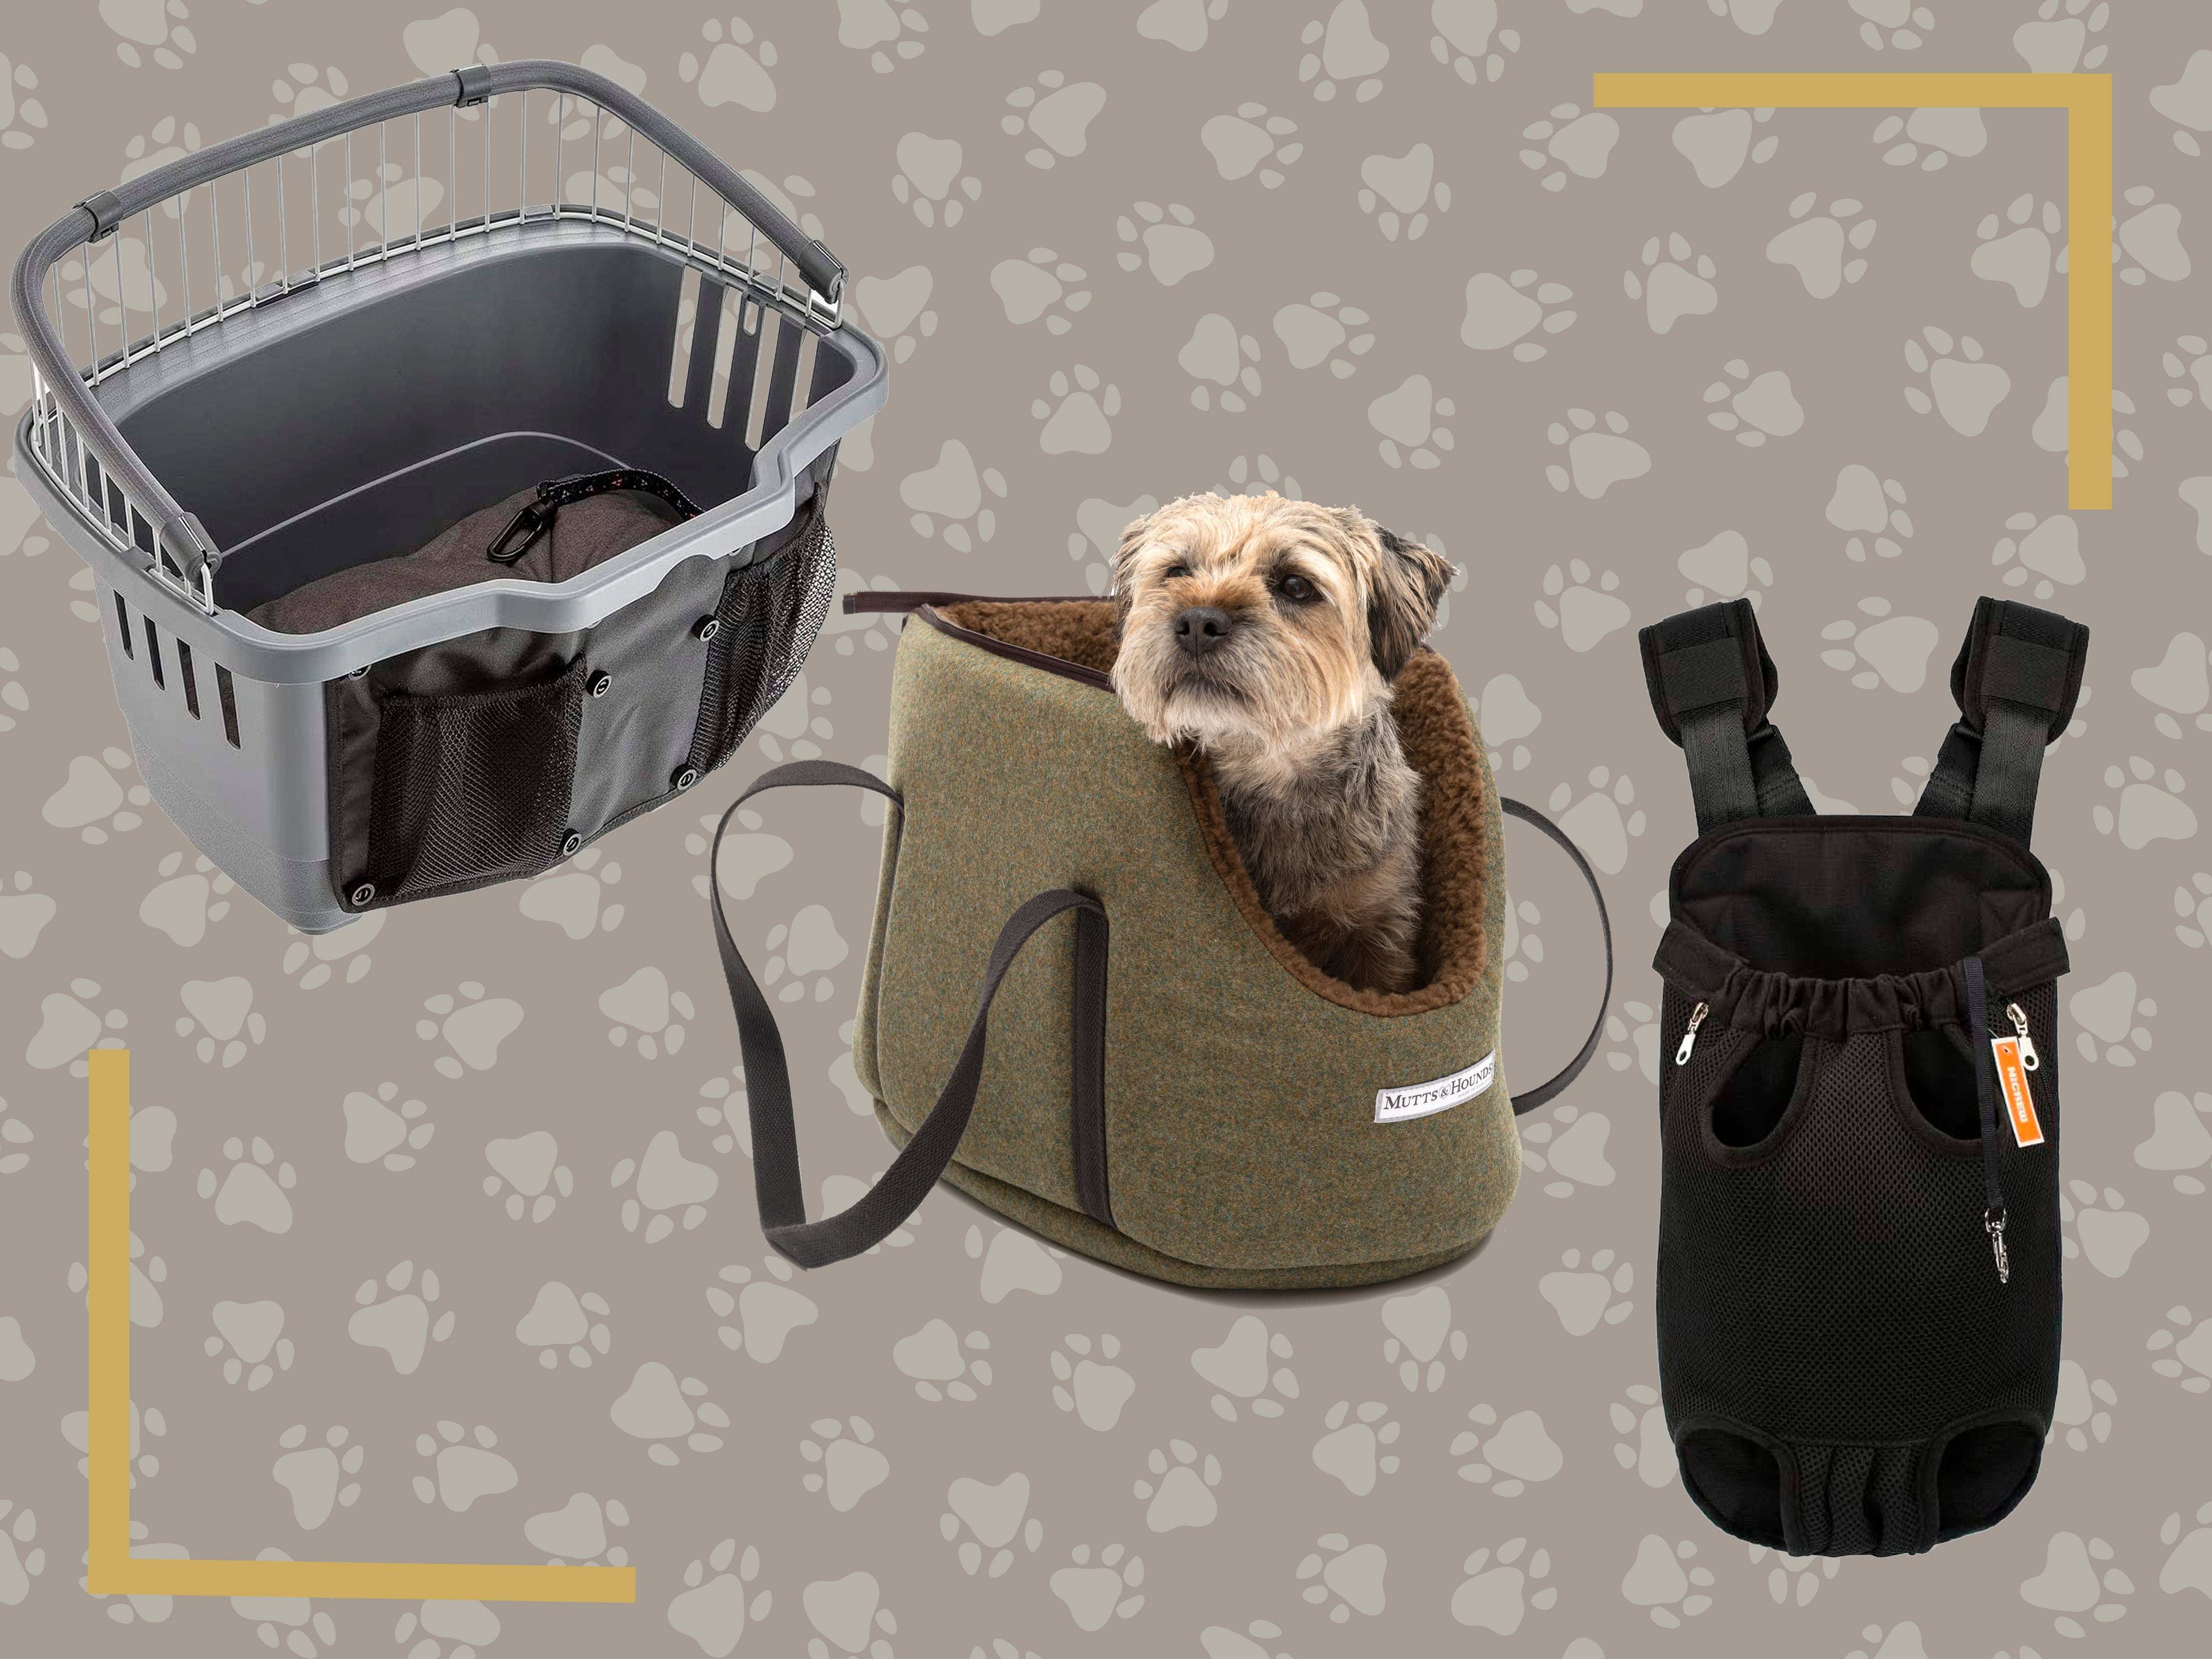 free360 Fanny Pack with Water Bottle Holder-Hiking Running Dog Walking Travel Cycling Holds iPhone8 Plus